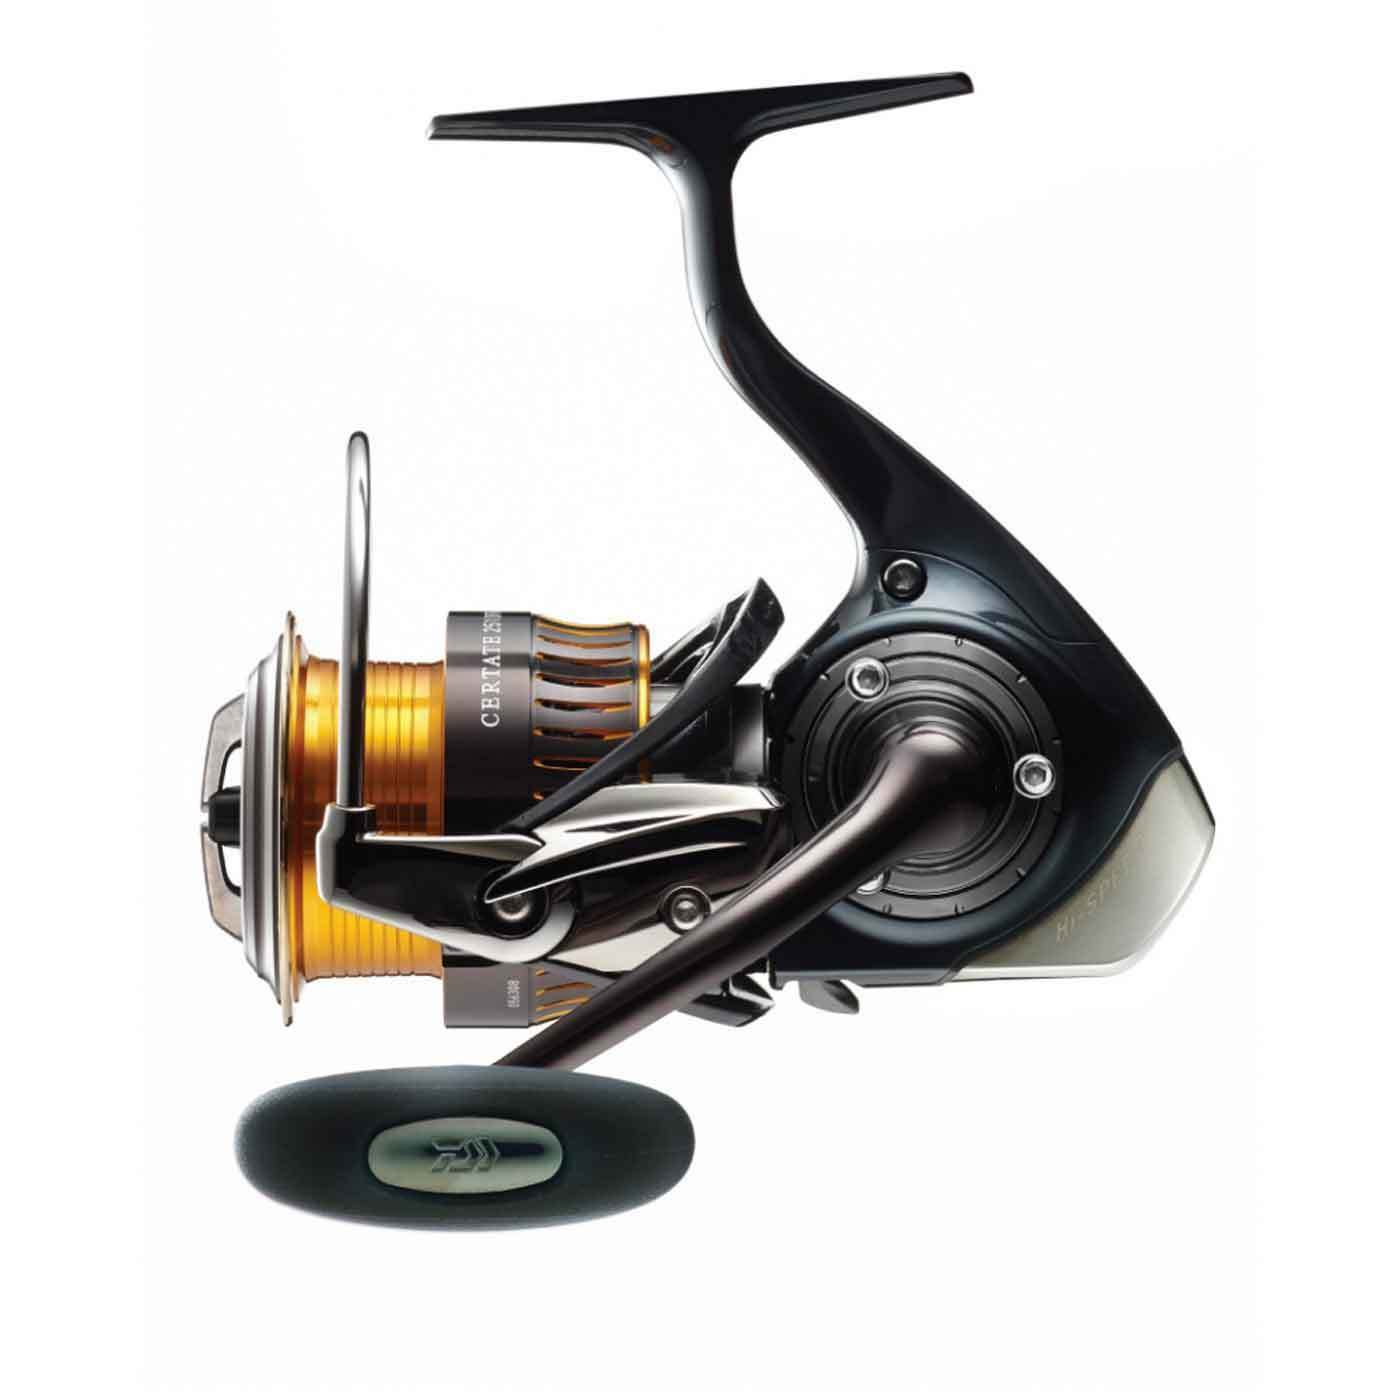 Daiwa 16 Certate 4000H Reel Brand New - Free Delivery